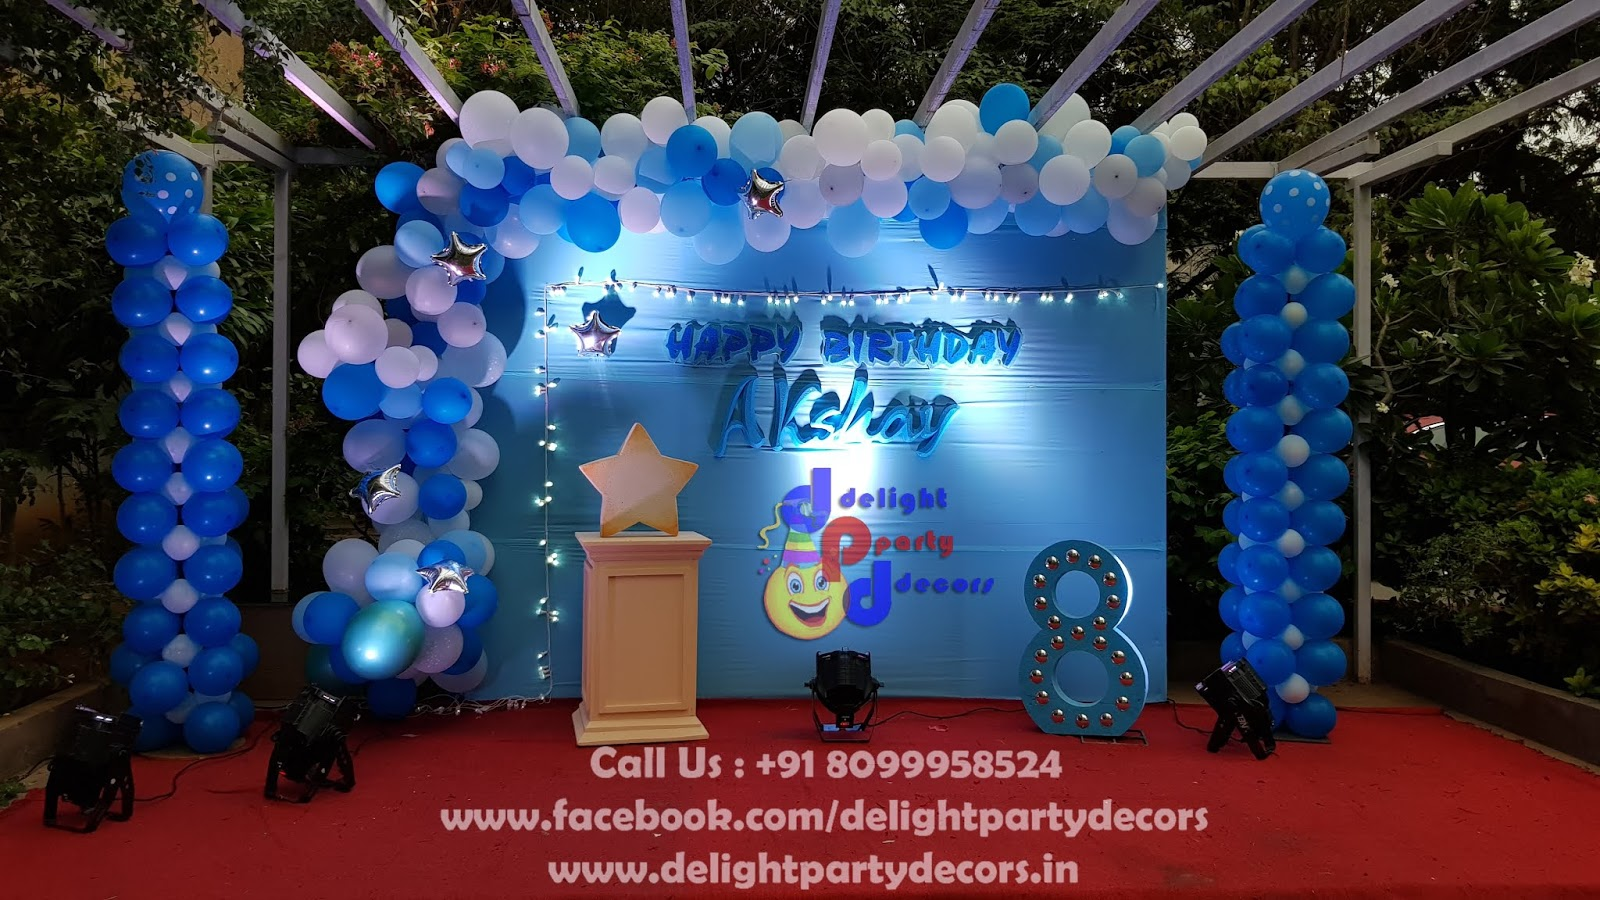 8 Years Old Boy Birthday Party Decoration In Hyderabad Call Us For More Details 91 8099958524 8YearsOldBoyBirthdayPartyDecorationInHyderabad